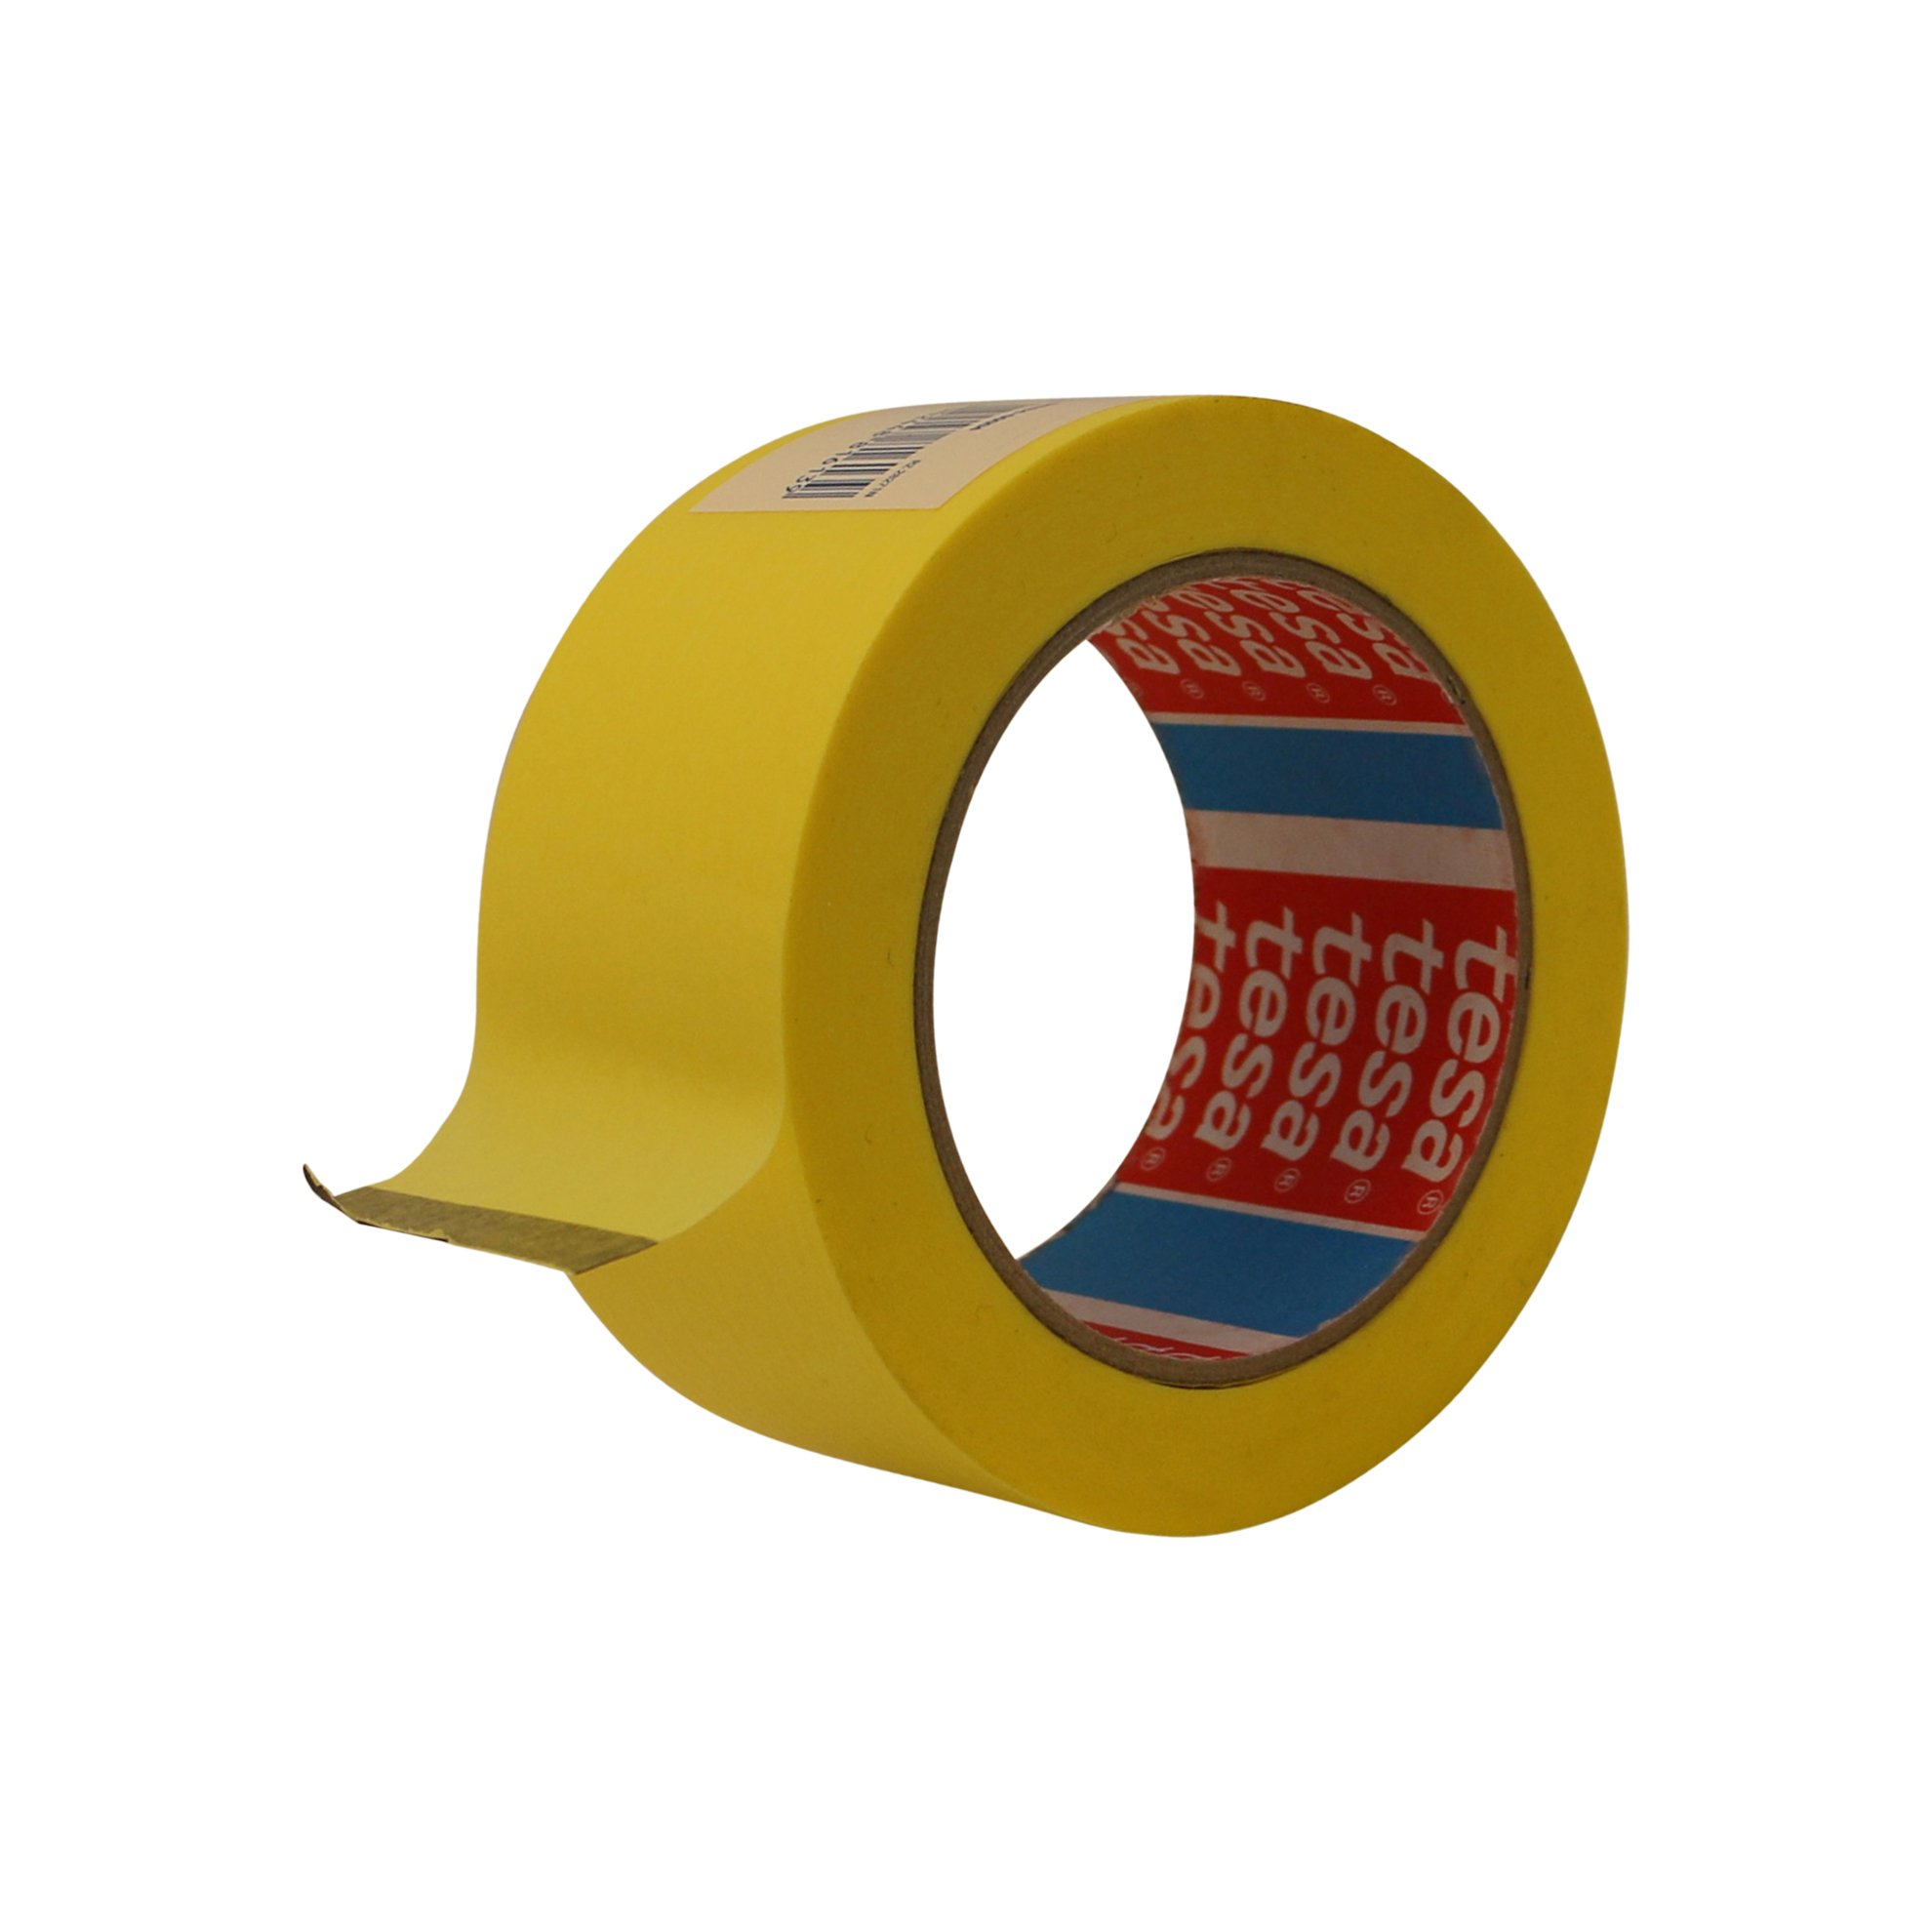 tesa 4334 Precision Mask Painters Tape: 2 in. x 55 yds. (Yellow)